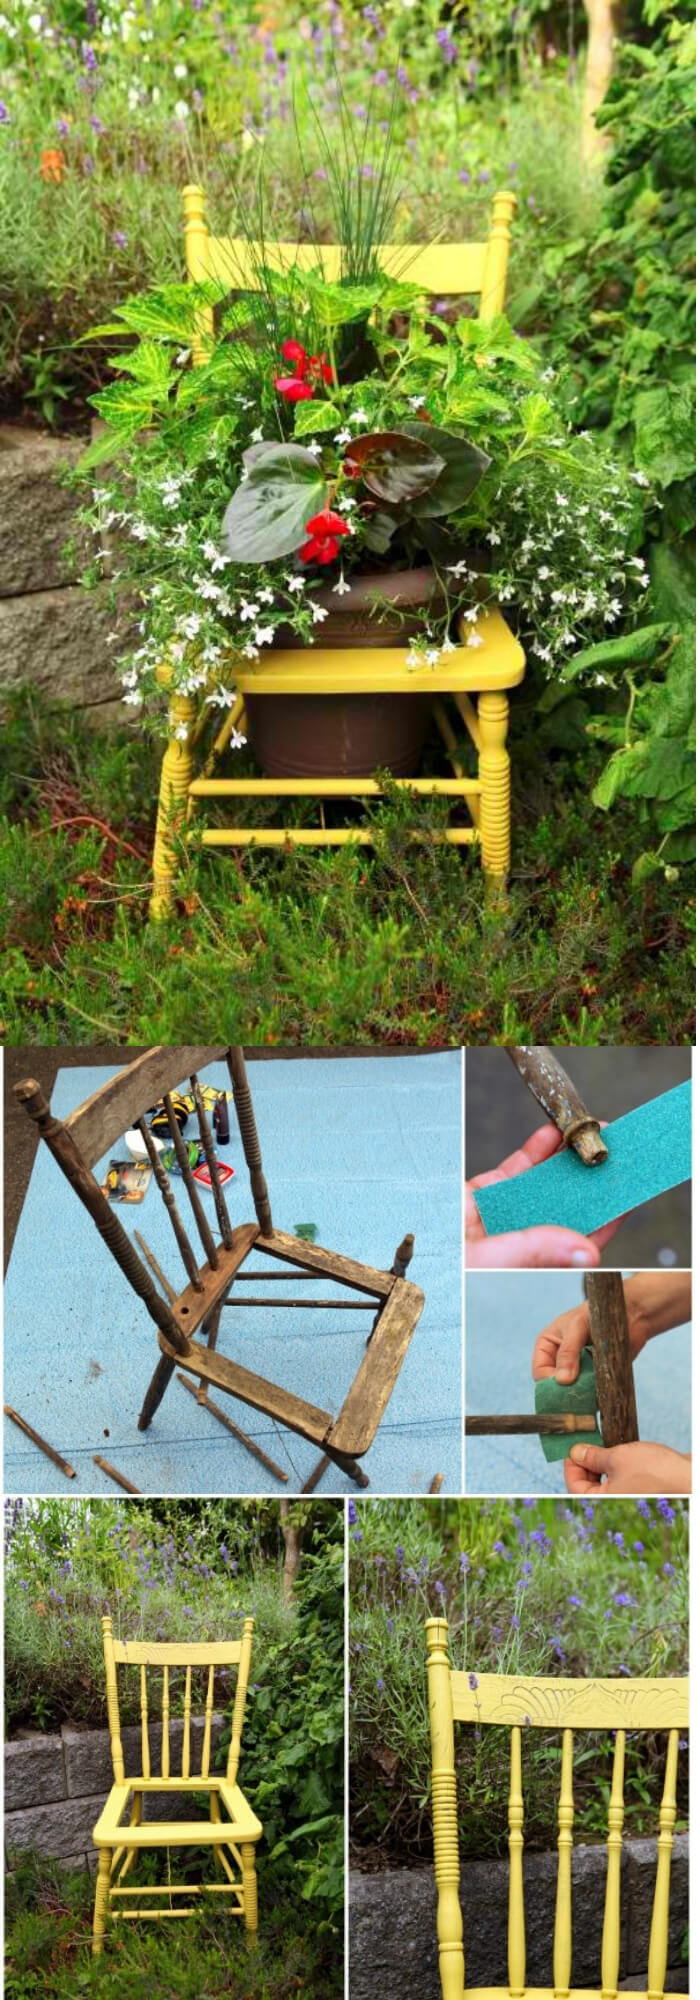 Piece of sunshine   Creative Upcycled DIY Chair Planter Ideas For Your Garden